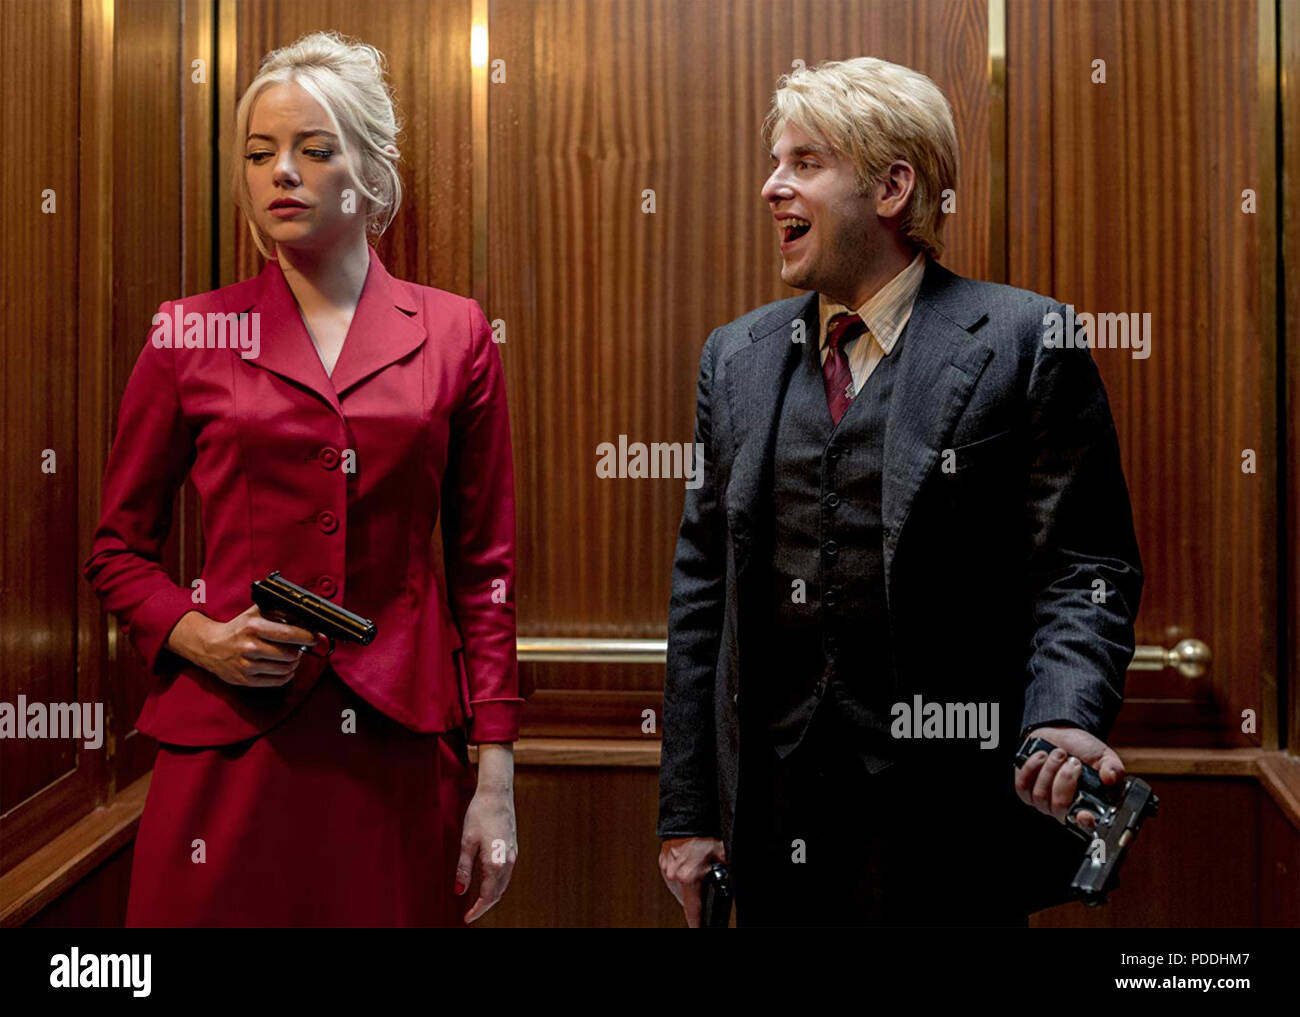 MANIAC 2018> Paramount Television series with Emma Stone and Jonah Hill - Stock Image